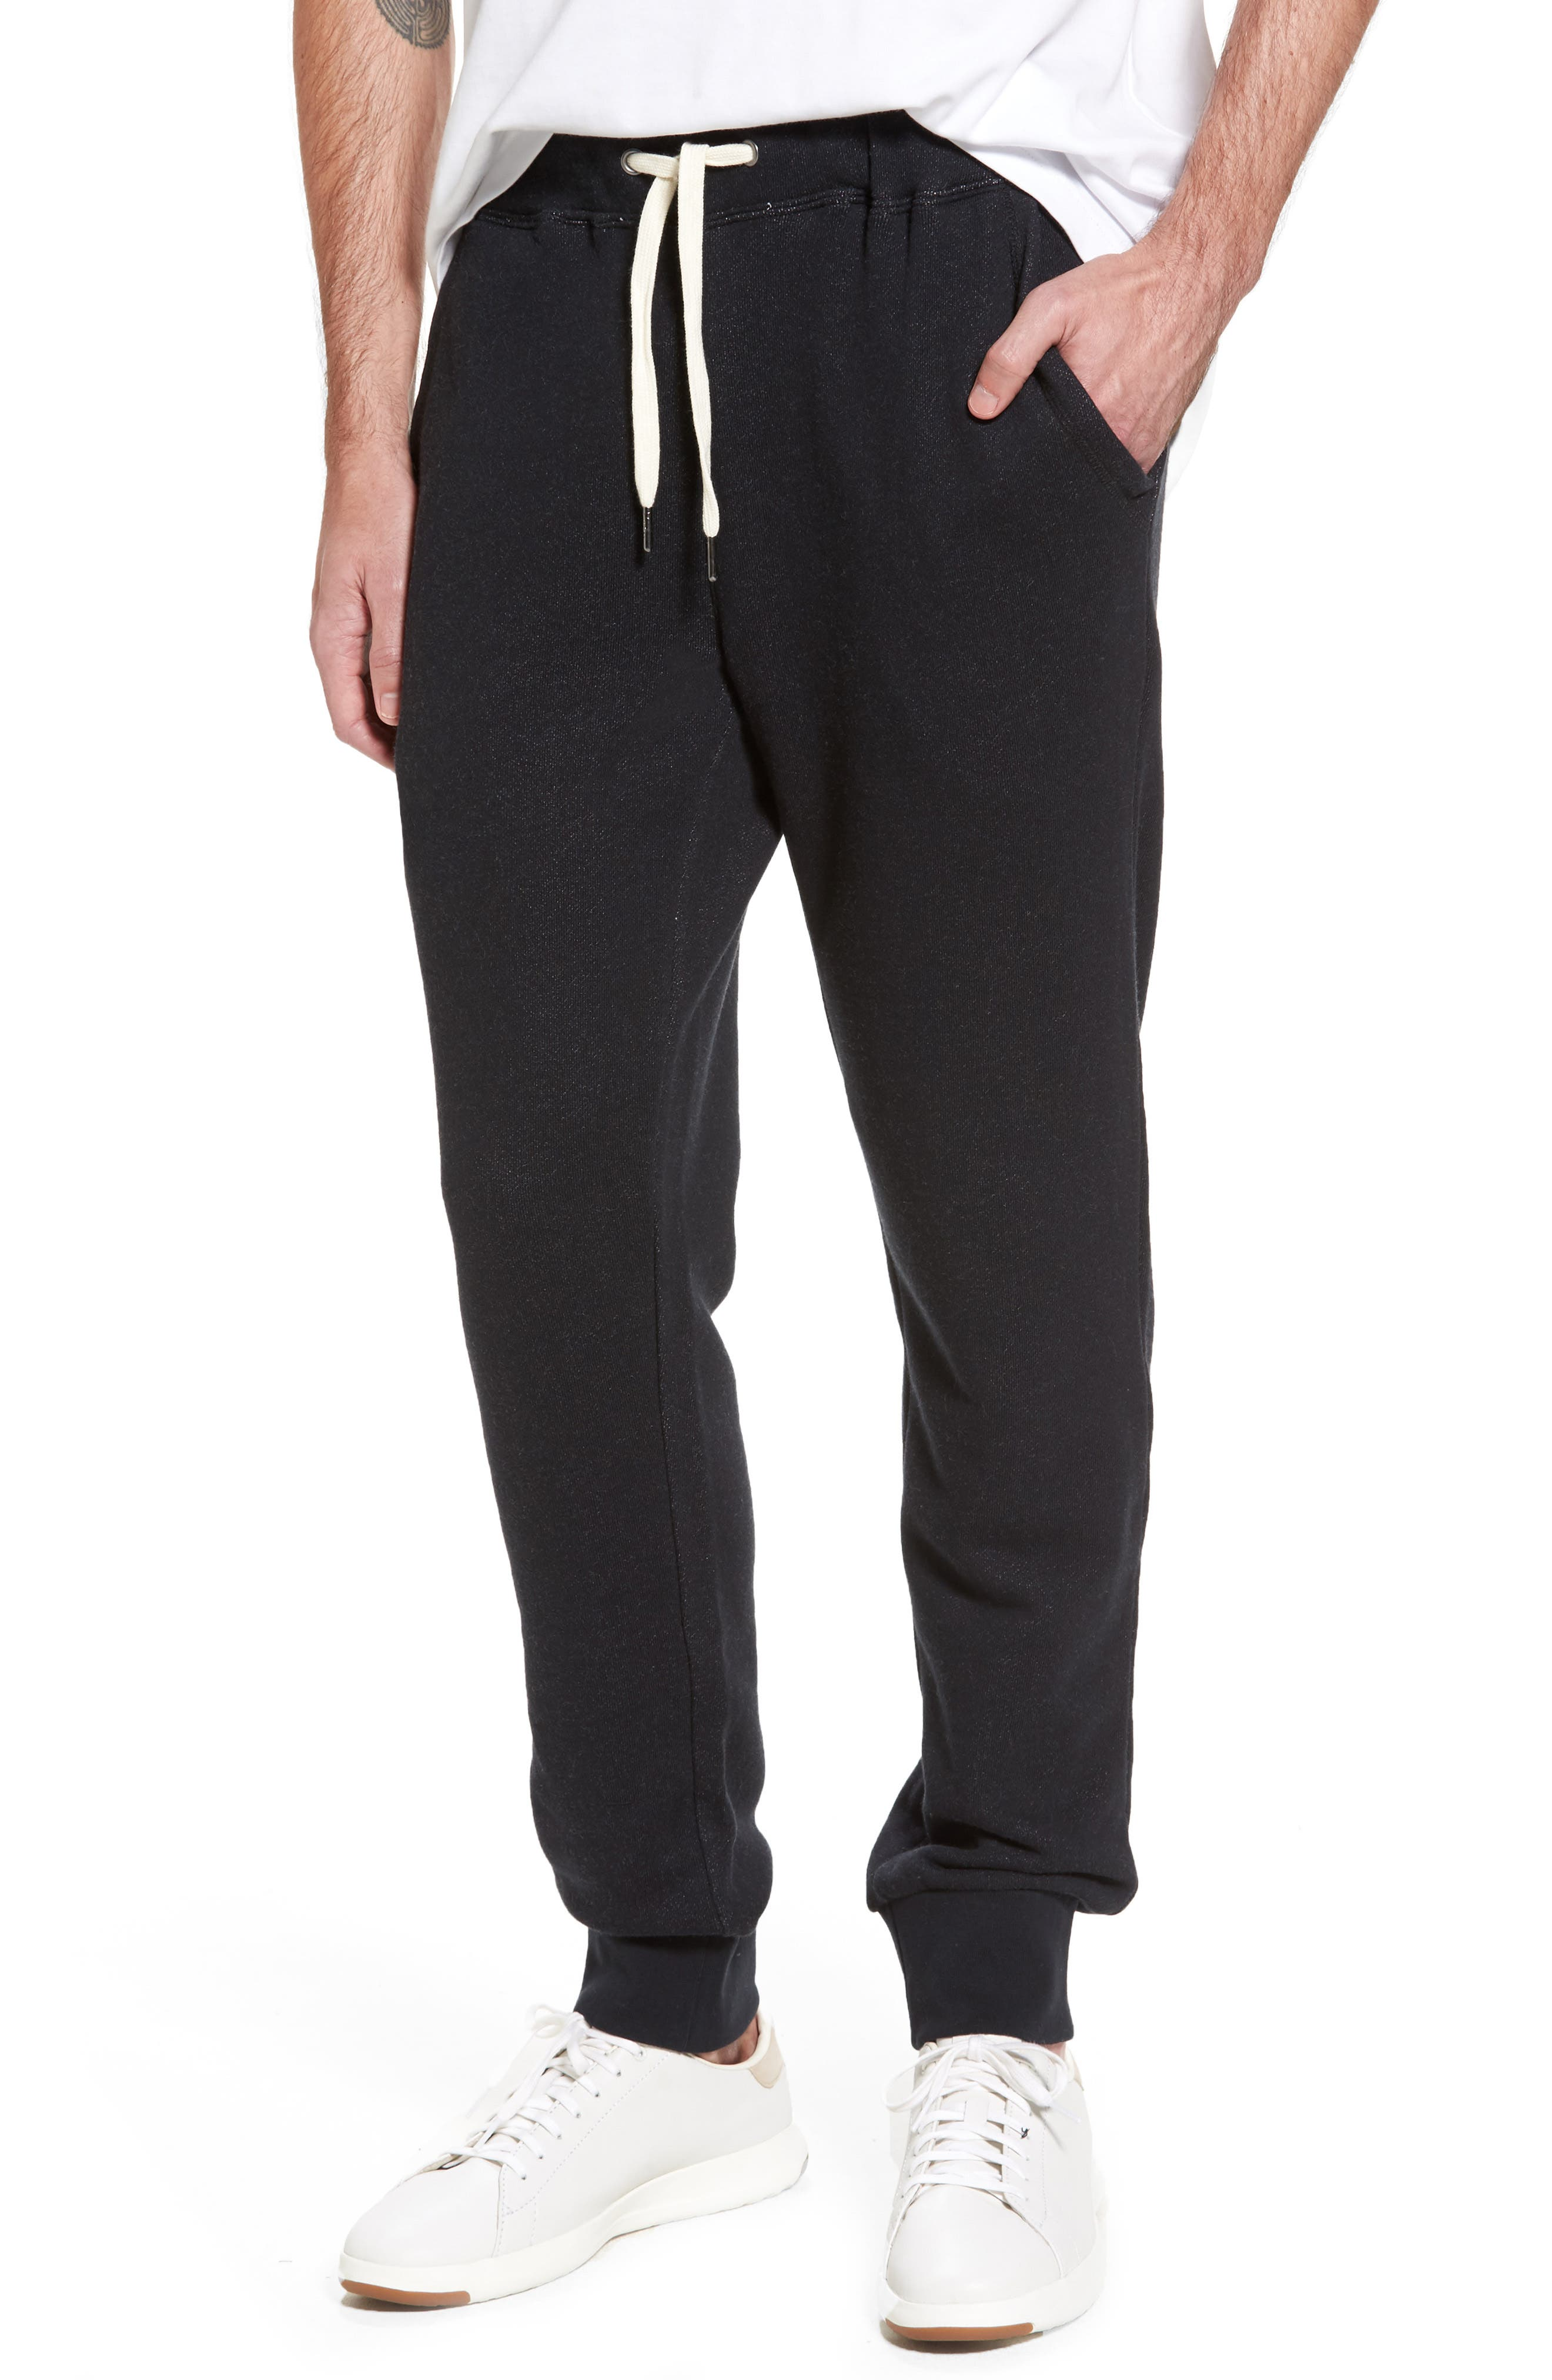 French Terry Jogger Pants,                             Main thumbnail 1, color,                             Black